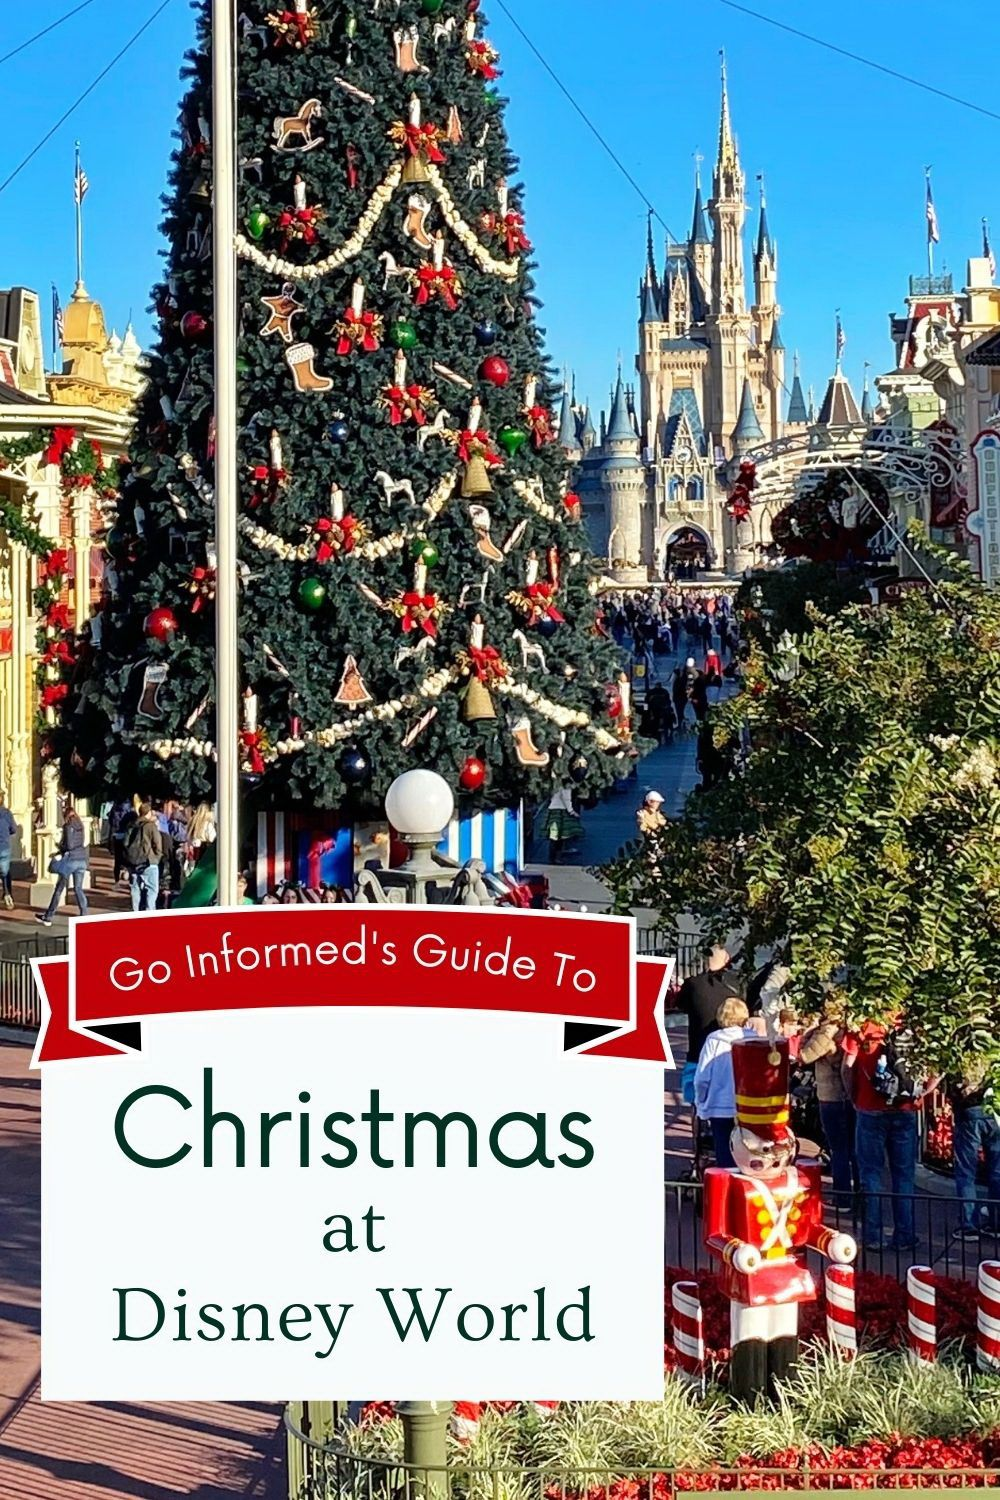 Where Should I Go For Christmas 2021 Plan Now For Disney World Chrismas 2021 Disney World Christmas Disney World Tips And Tricks Disney World Hotels